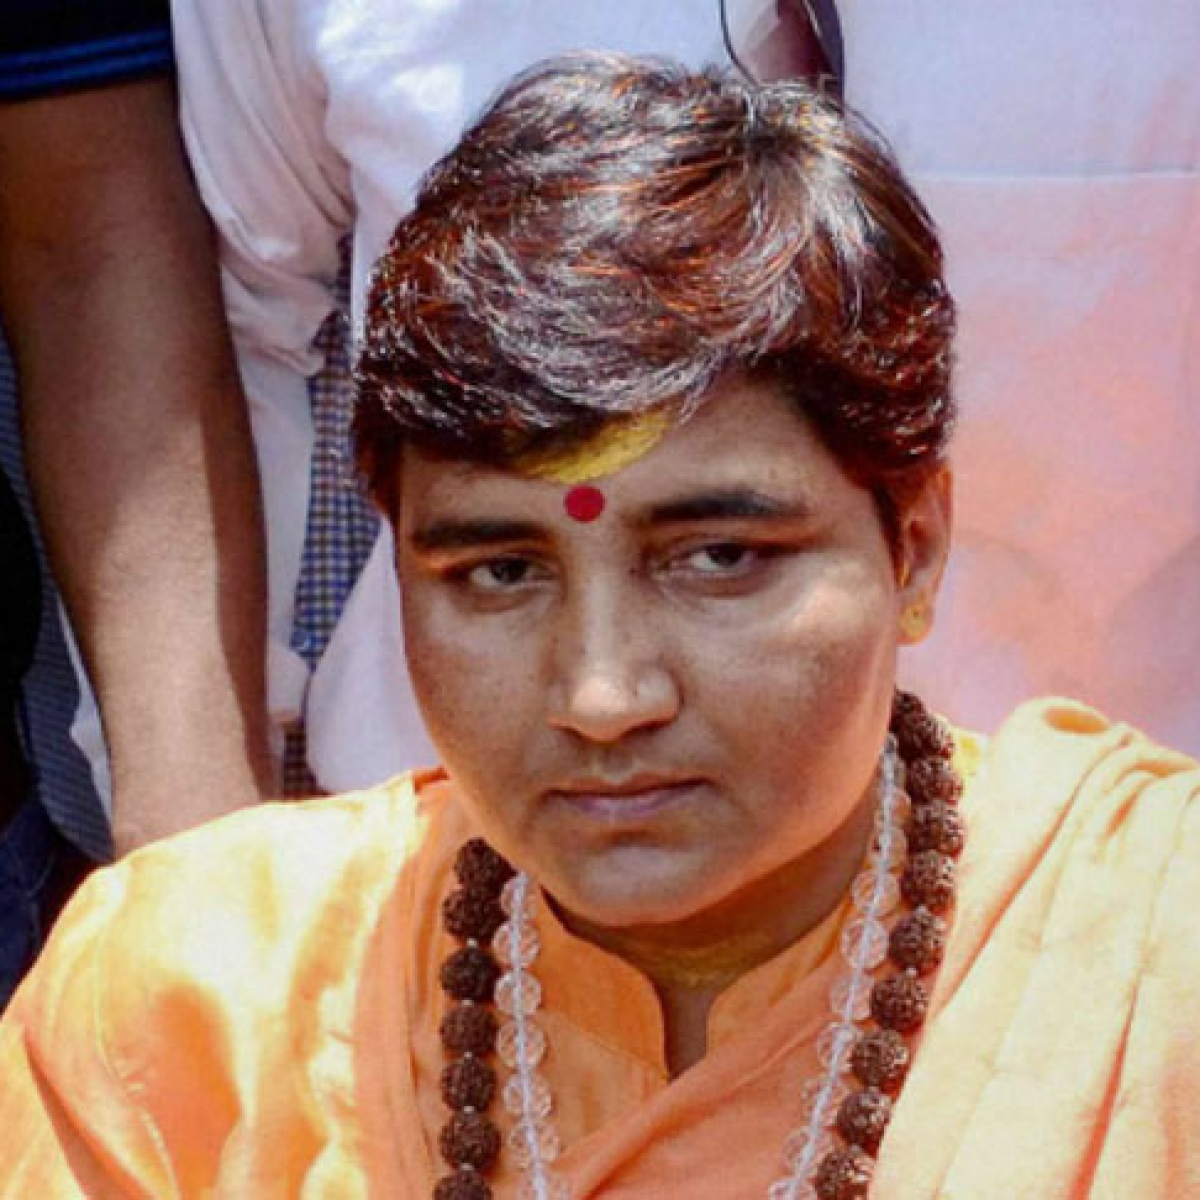 'Where is Pragya Thakur' posters surface in Bhopal; BJP spokesperson says she's in the hospital